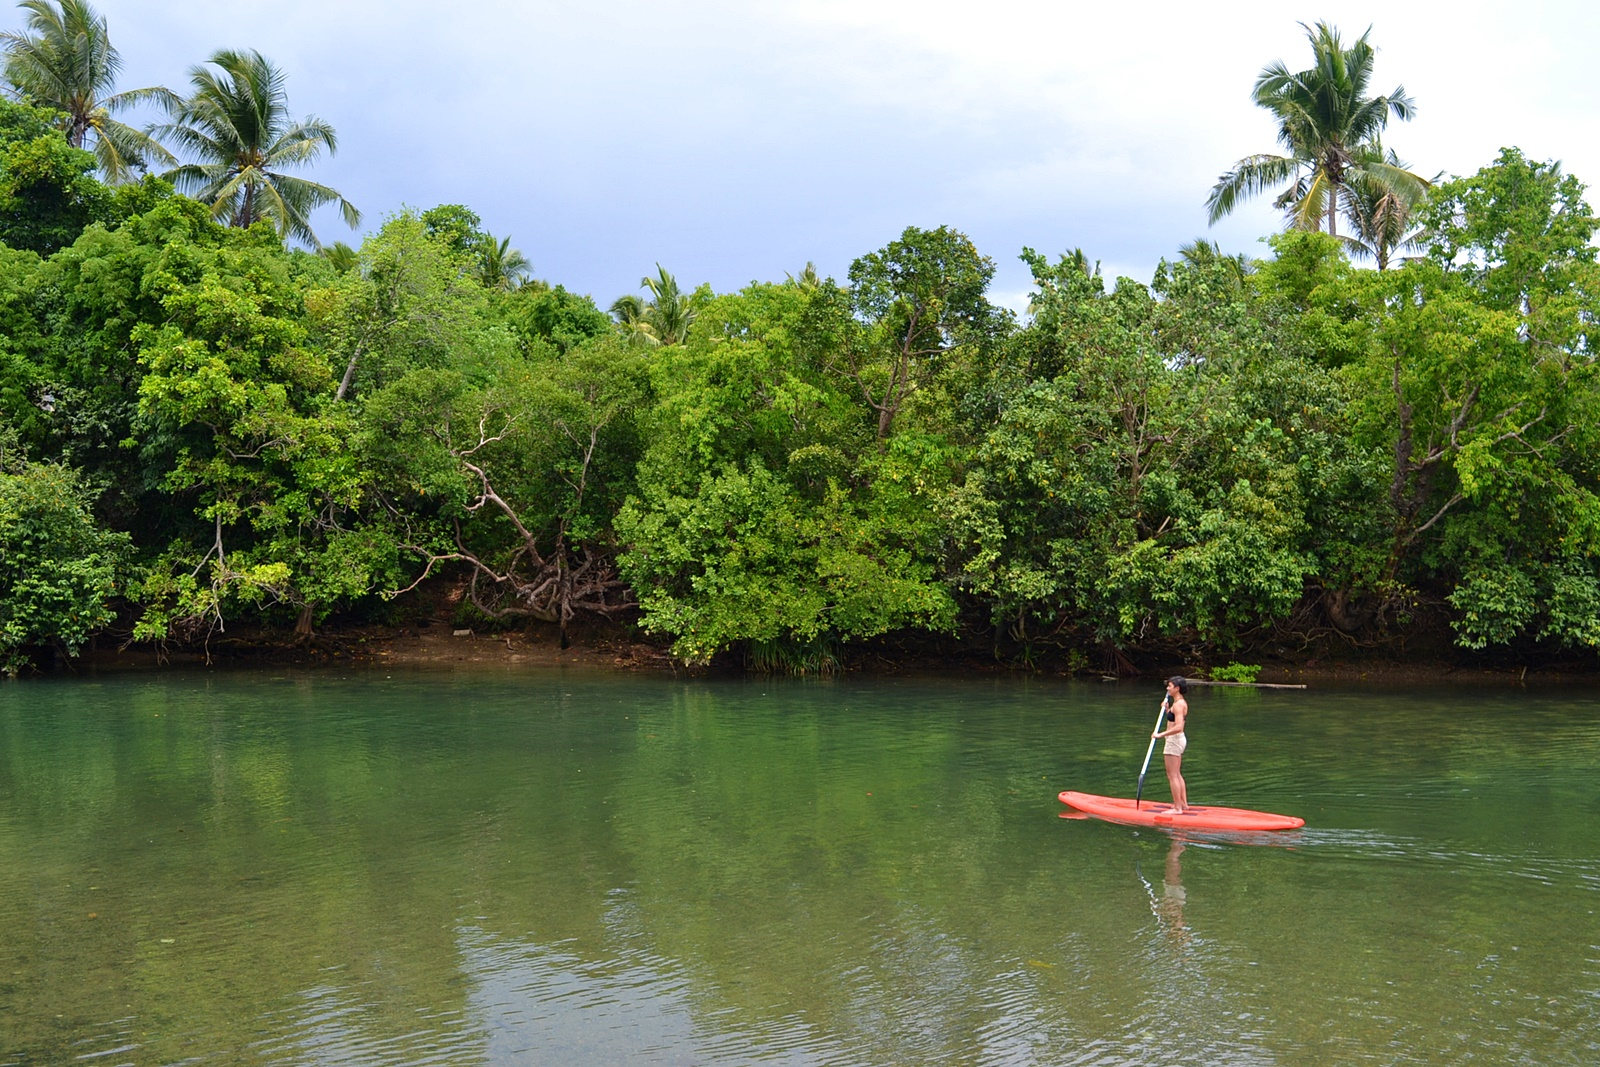 SUP in Bugang River. Photo by Aleah Taboclaon